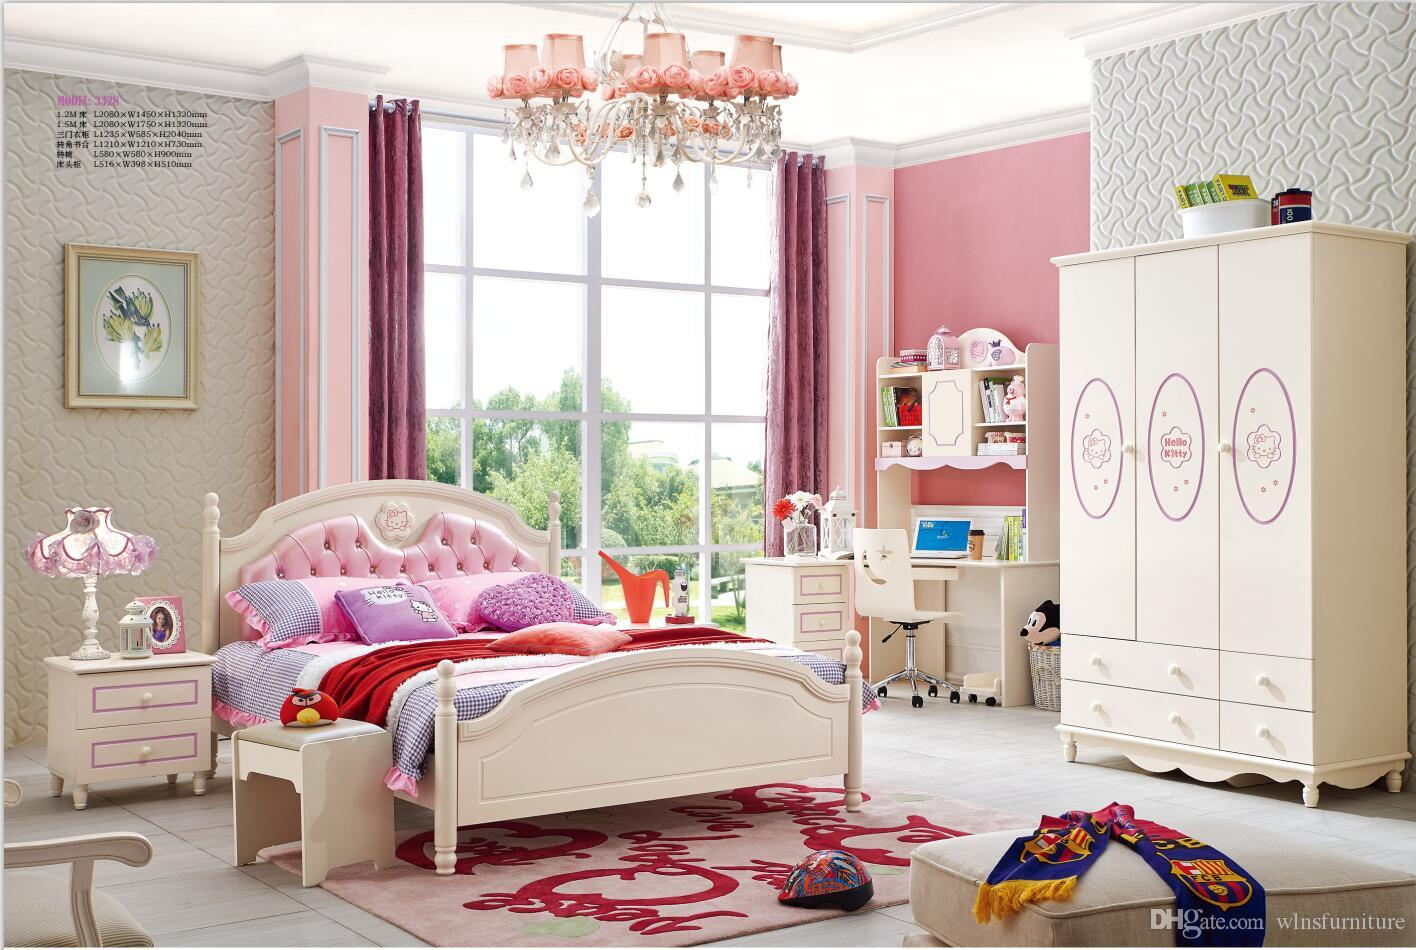 2019 ash solid wood children bedroom furniture set health environmentally friendly children bed wardrobe desk bedside table from wlnsfurniture